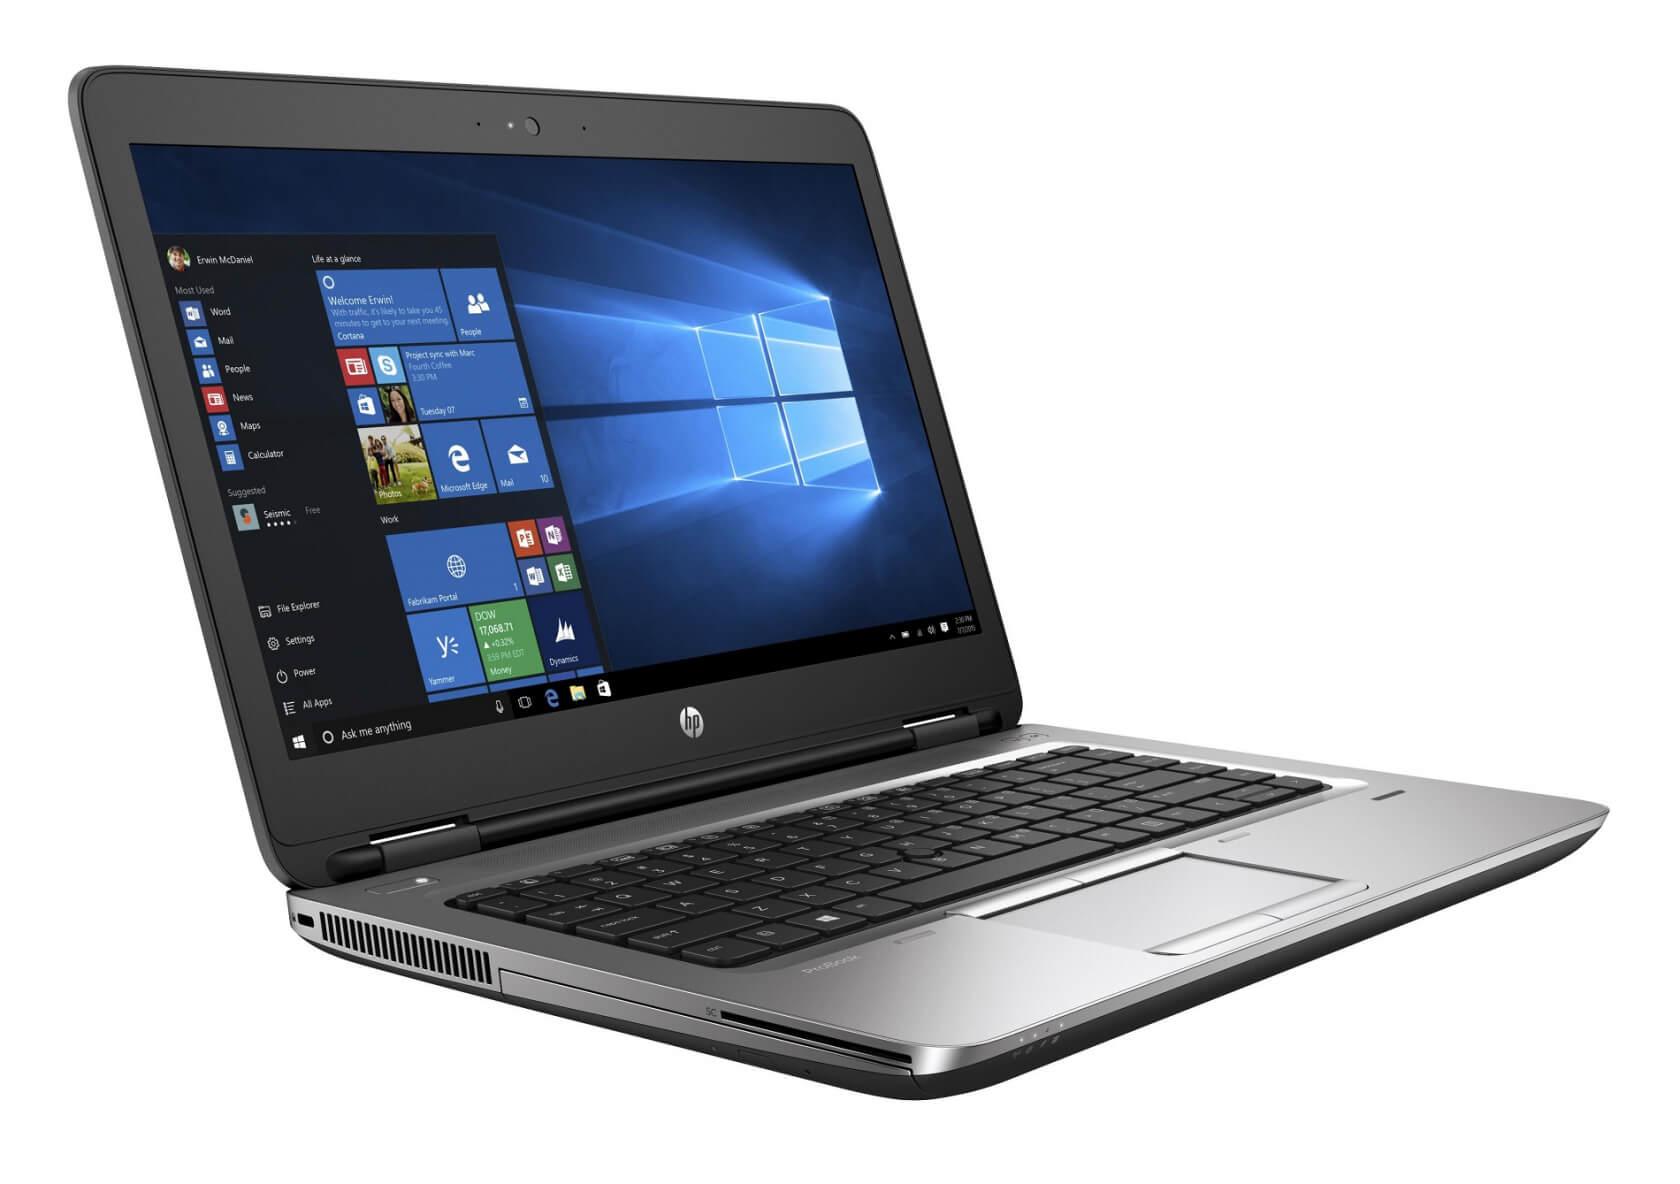 HP recalls 50000 consumer notebooks following